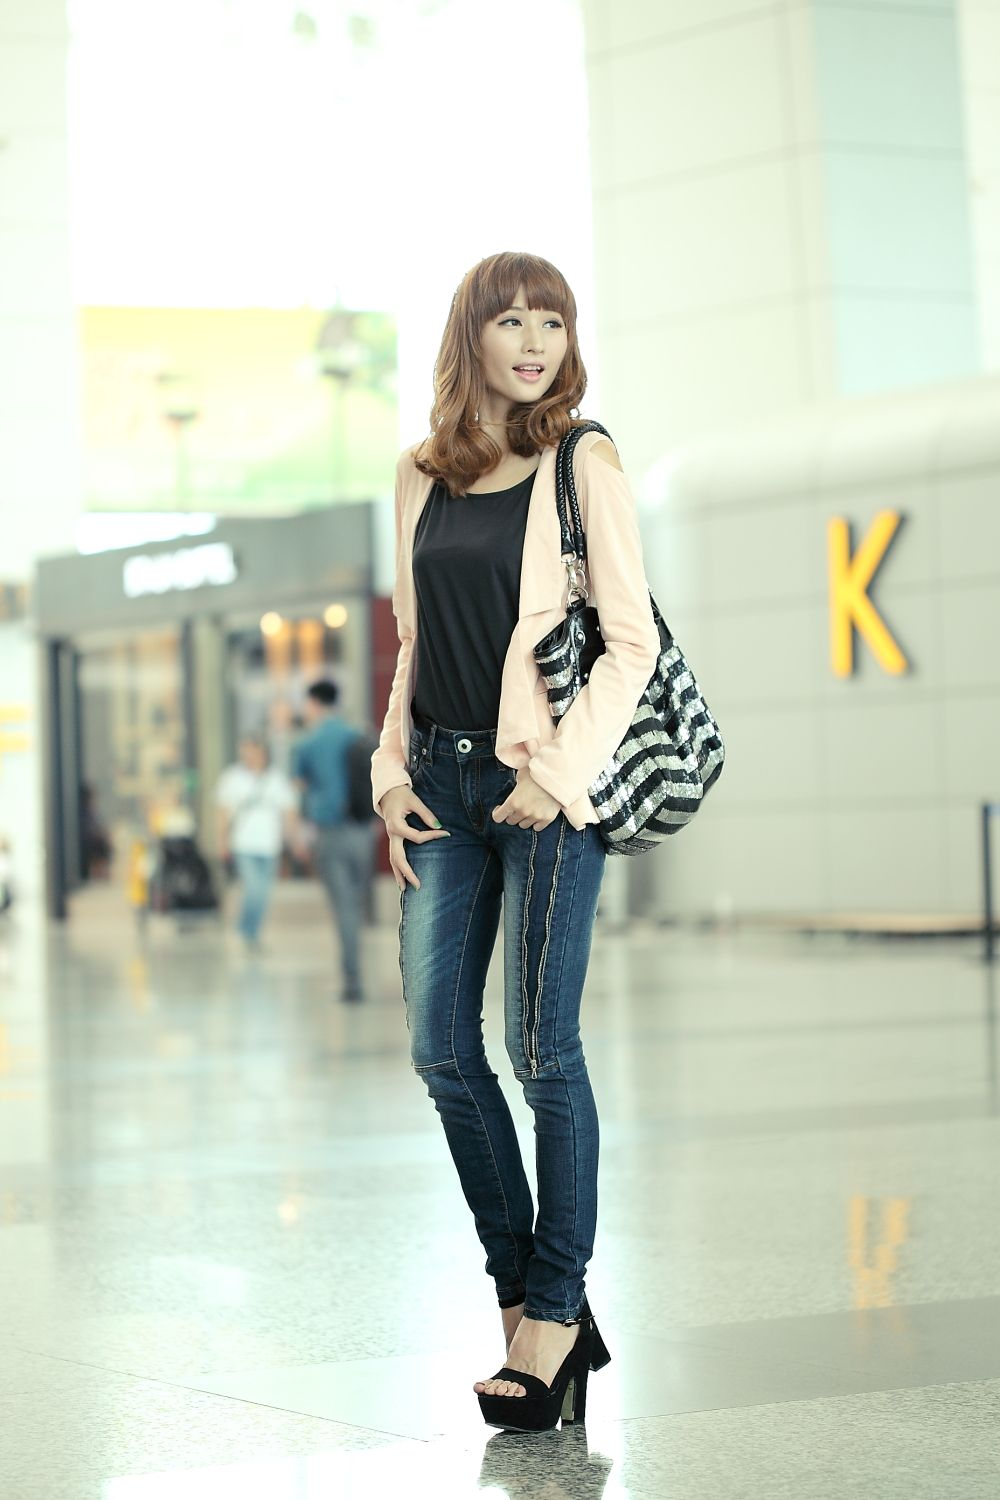 Woman Jeans by HLM